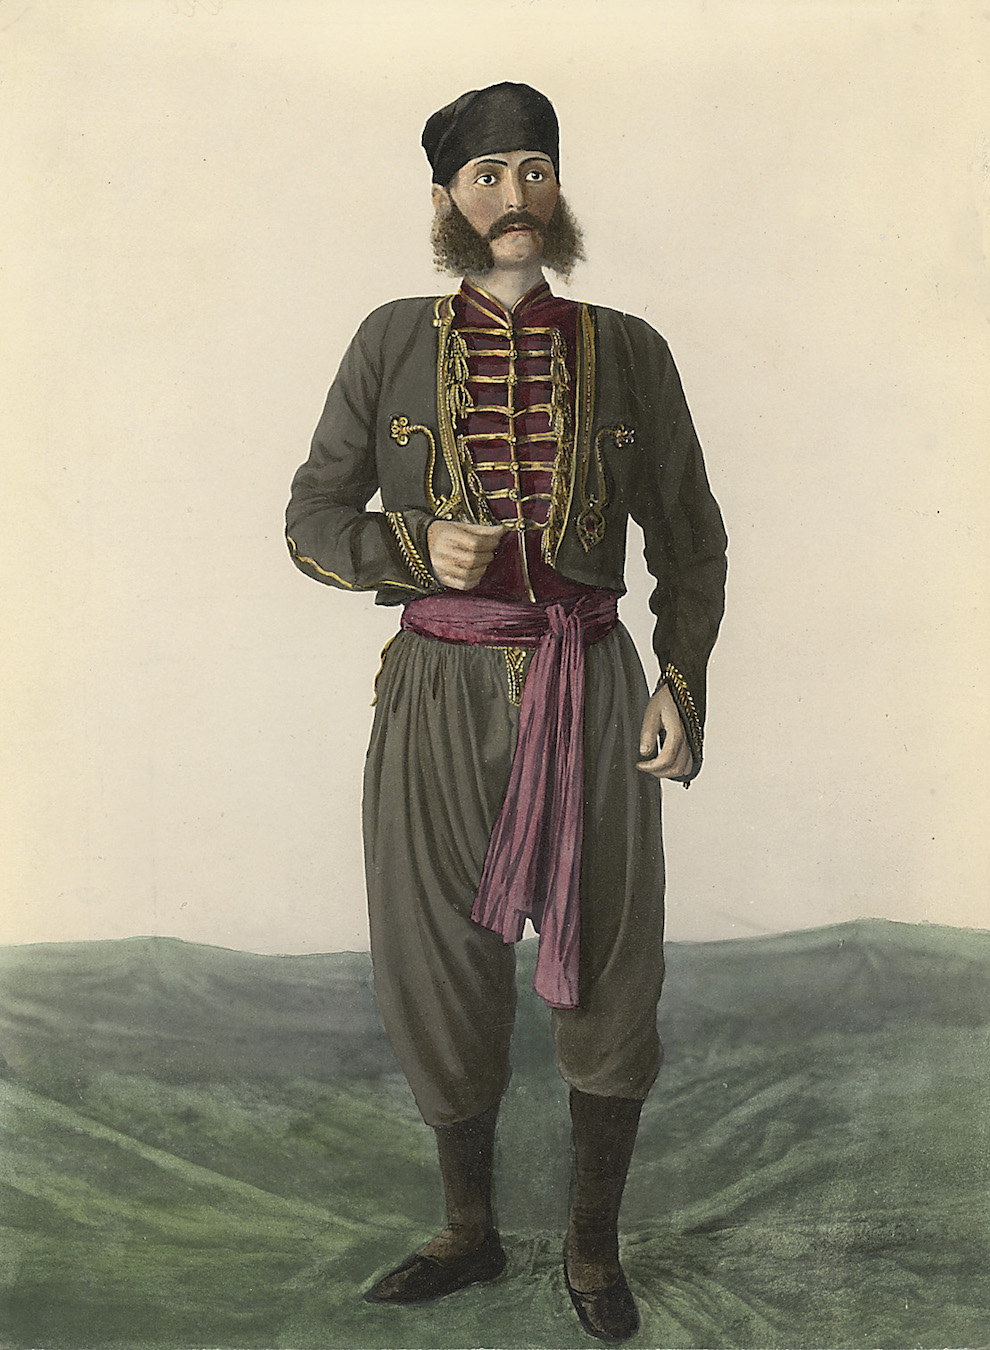 Montenegrin Man from the Bay of Kotor Region